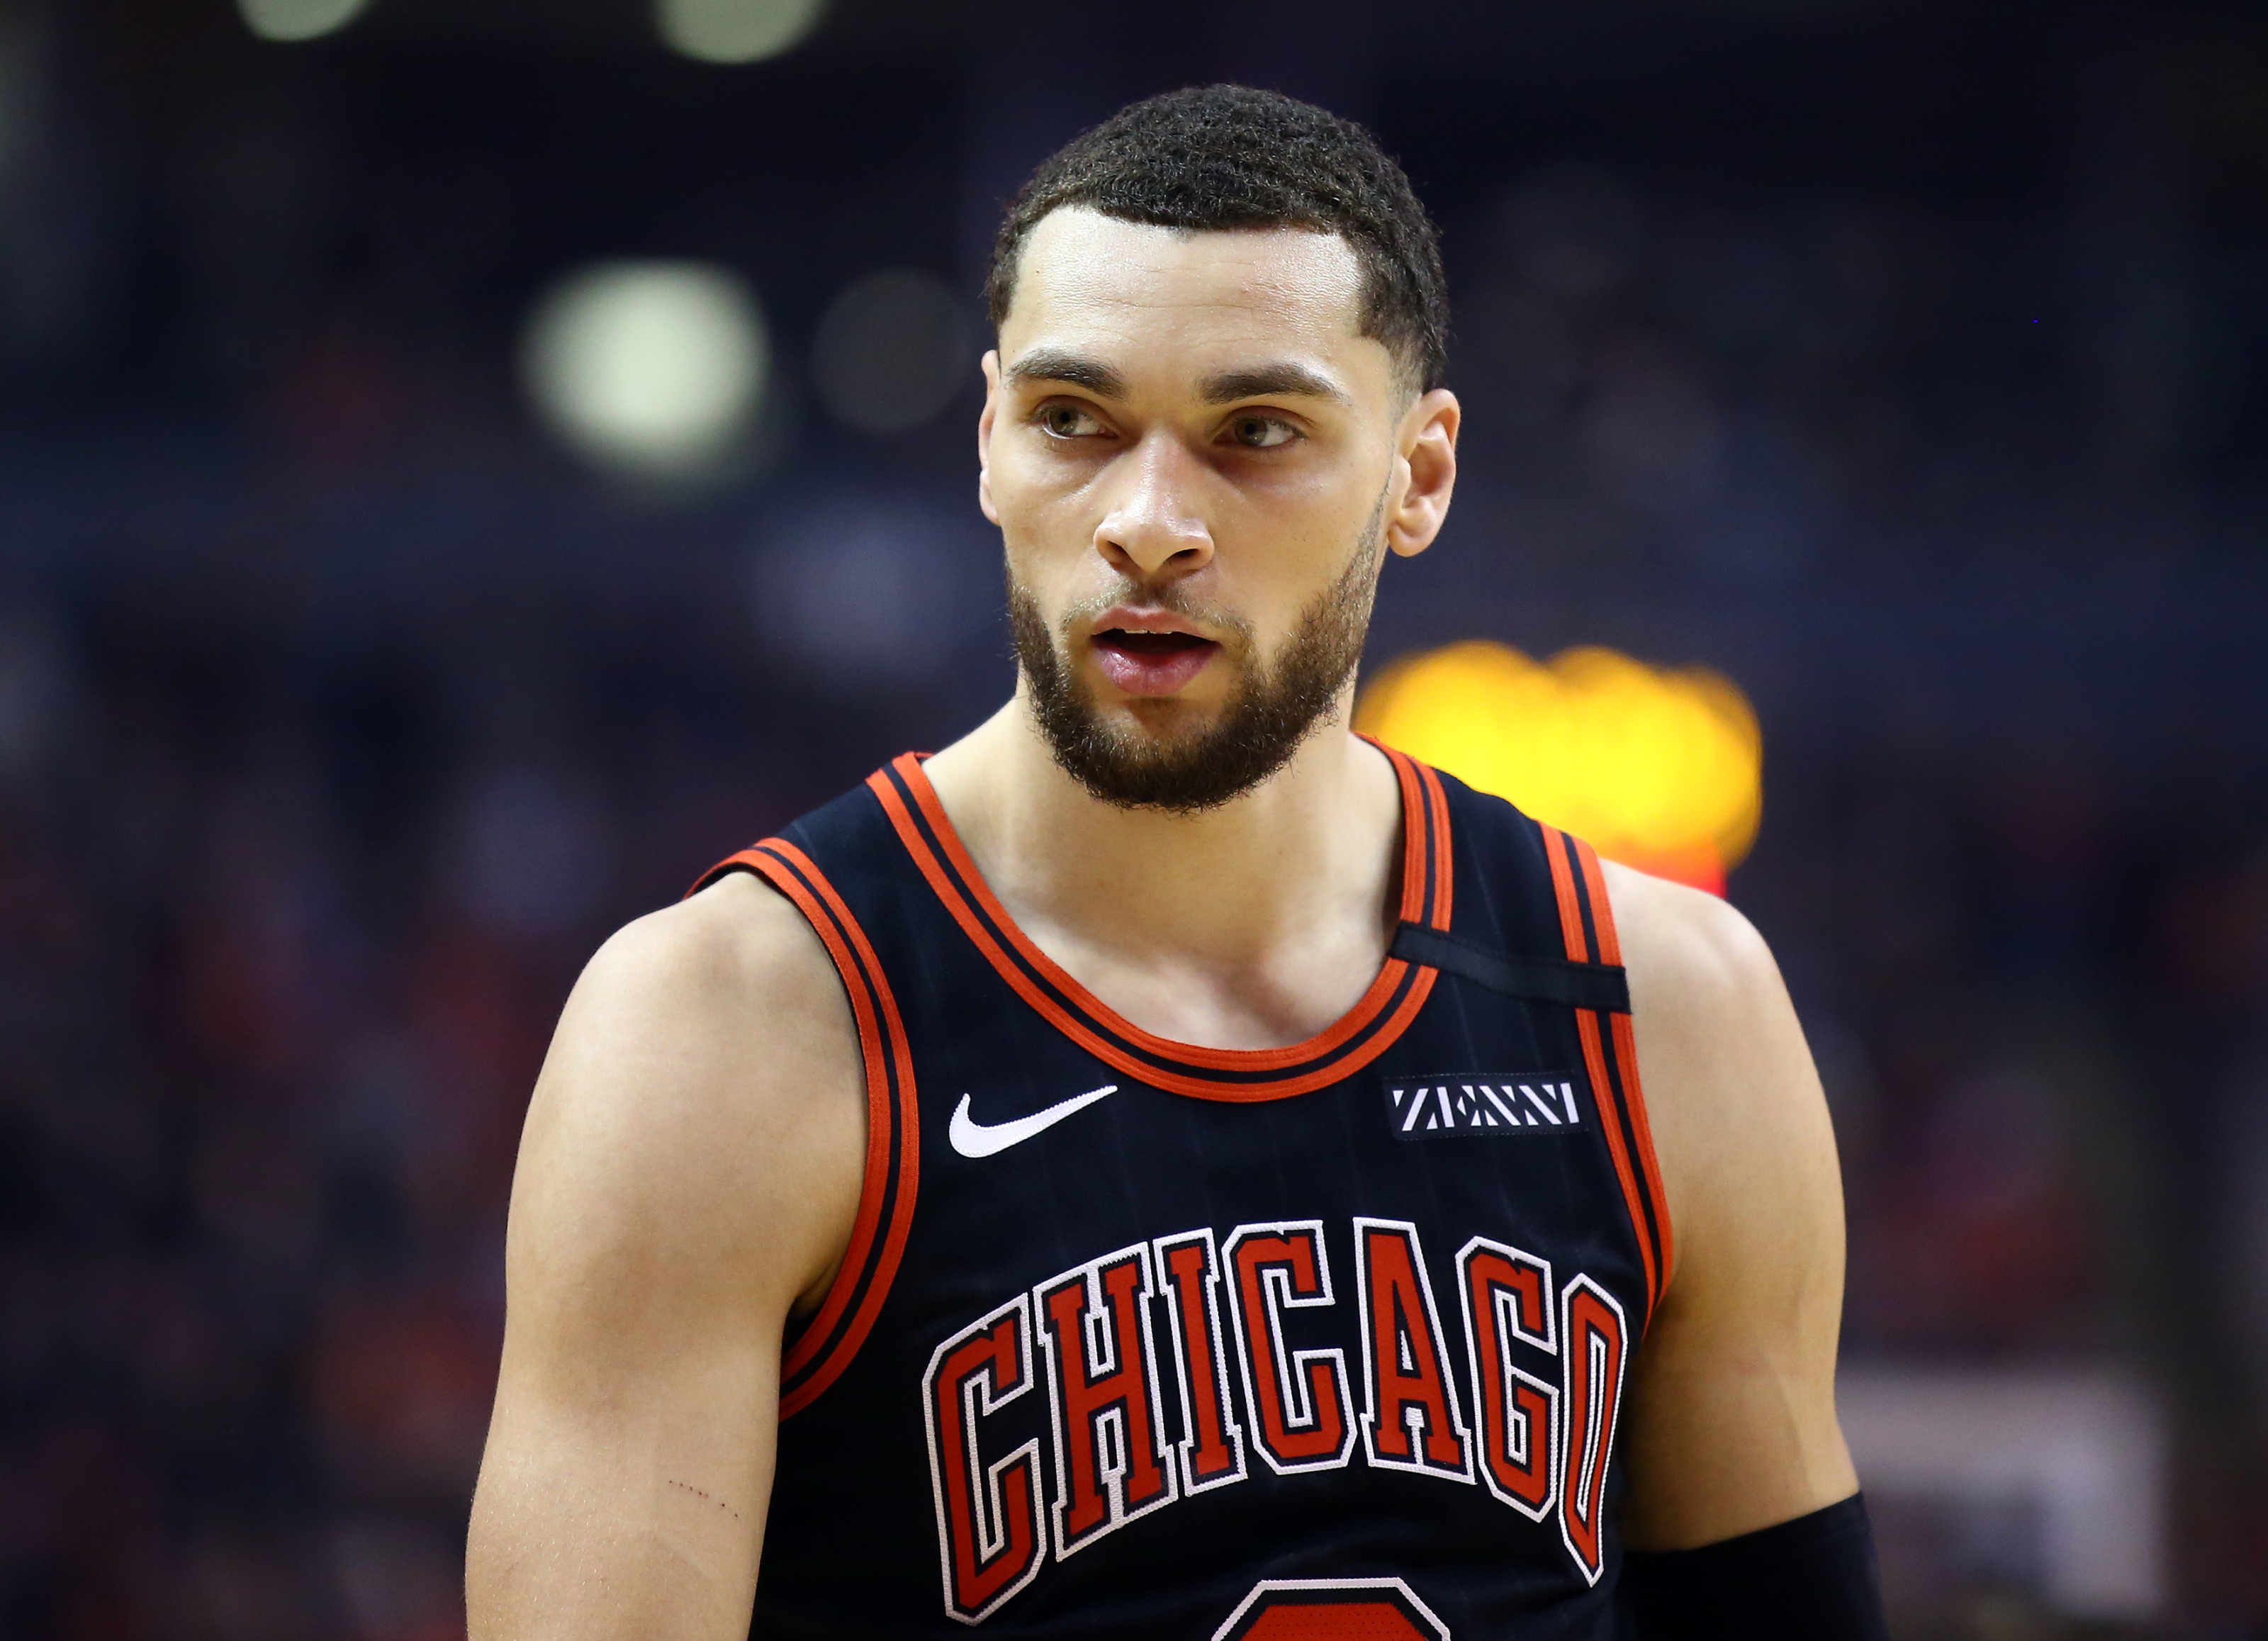 Chicago Bulls: Is Zach LaVine underrated or overrated? It's not that simple